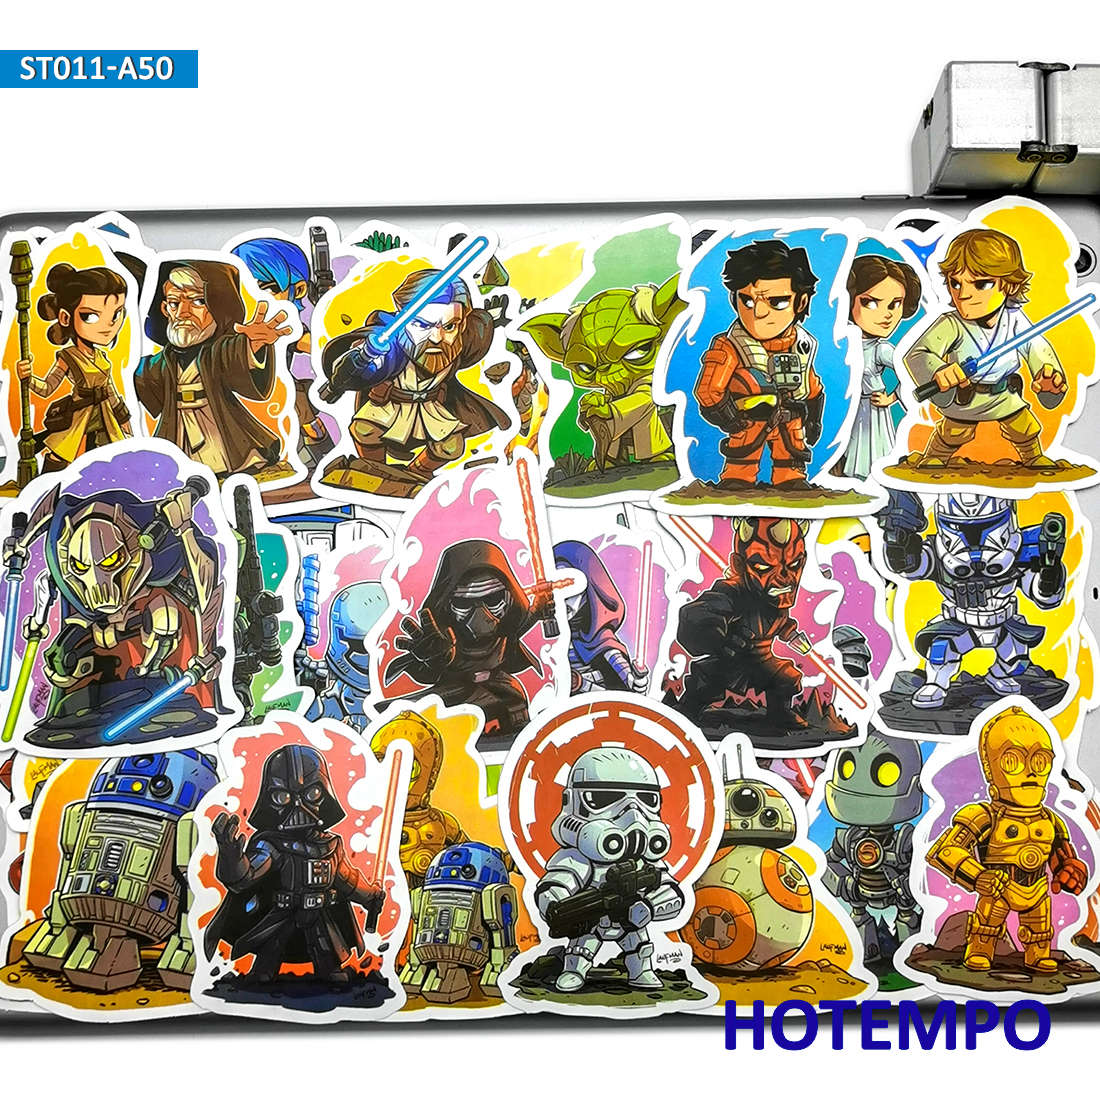 50pcs Cartoon Star War Comic Style Stickers Toys For Kids Mobile Phone Laptop Luggage Skateboard Stationery Anime Decal Stickers